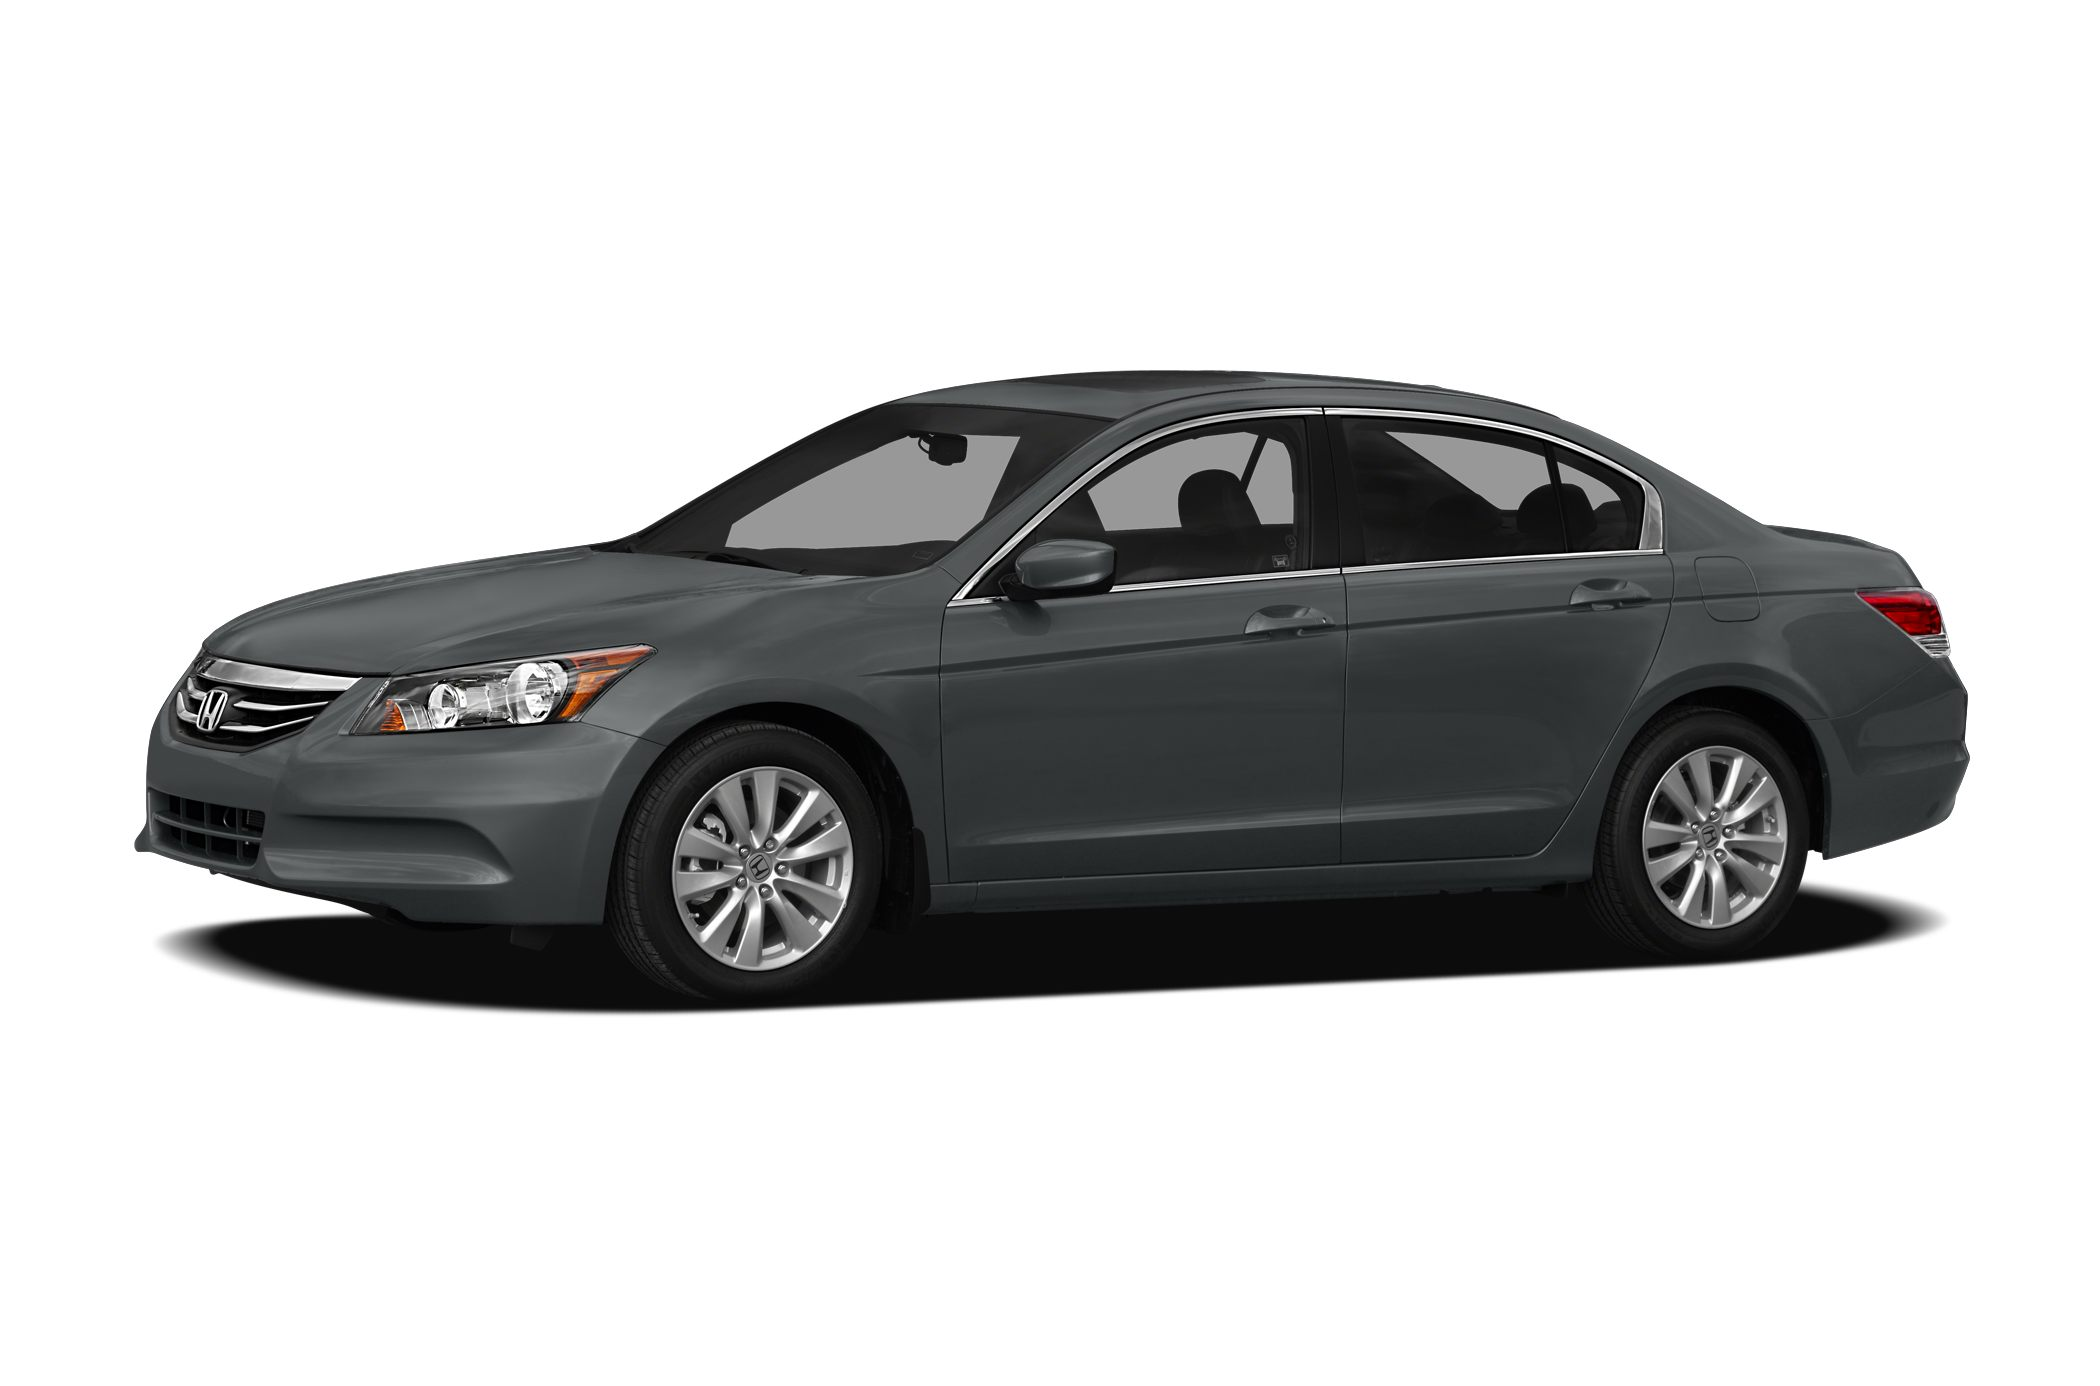 2012 Honda Accord EX Sedan for sale in Greenville for $18,500 with 43,831 miles.